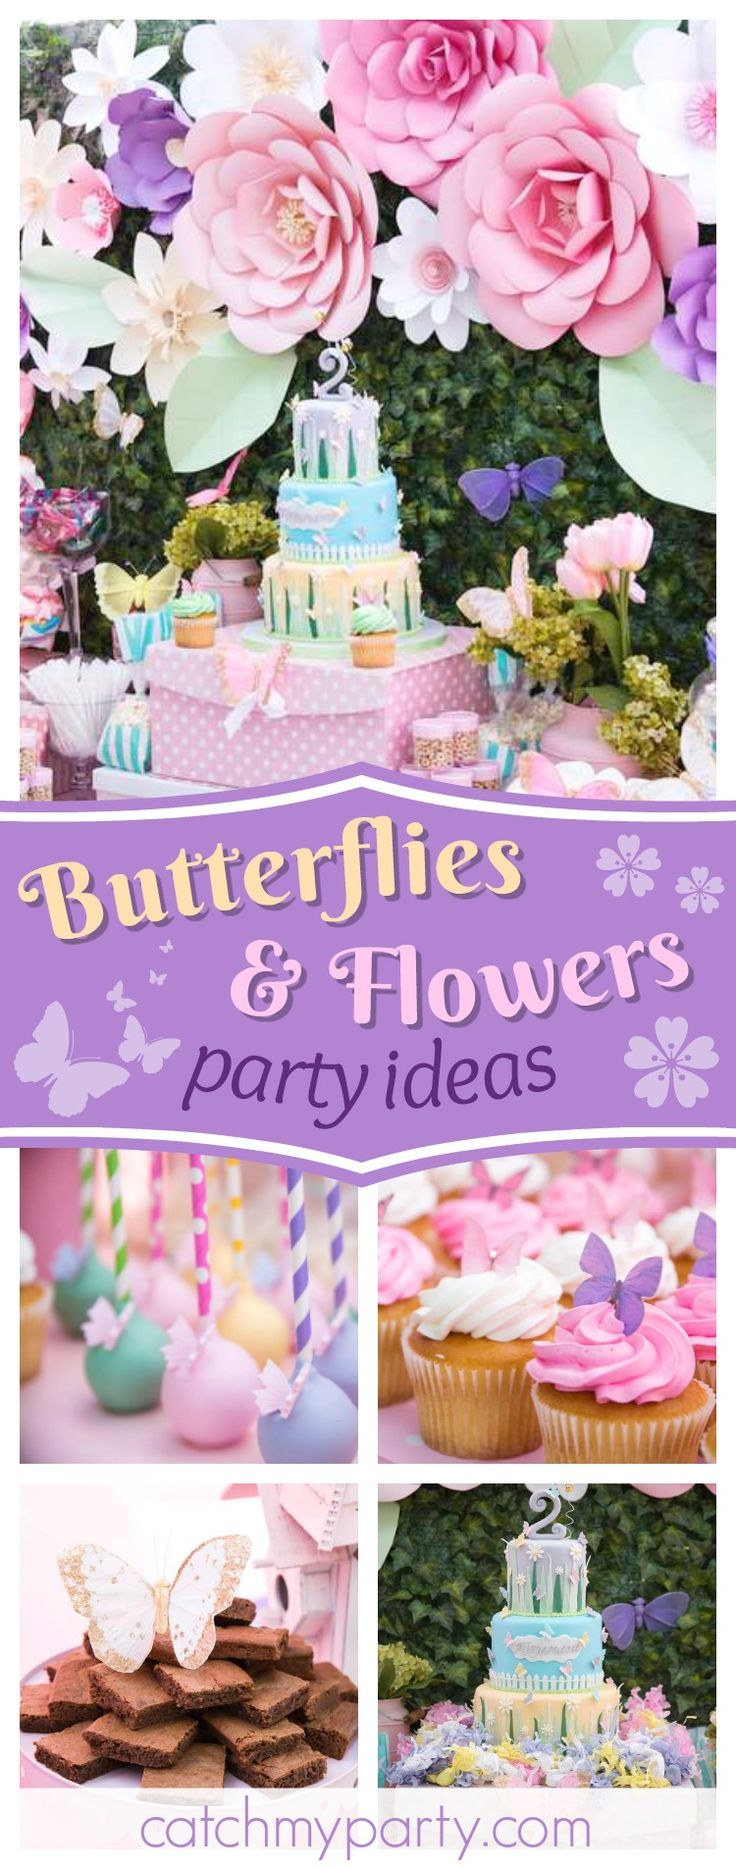 Don't miss this pretty butterflies and flowers garden birthday party! The cupcakes are gorgeous!! See more party ideas and share yours at CatchMyParty.com #garden #butterflies #flowers #girlbirthday